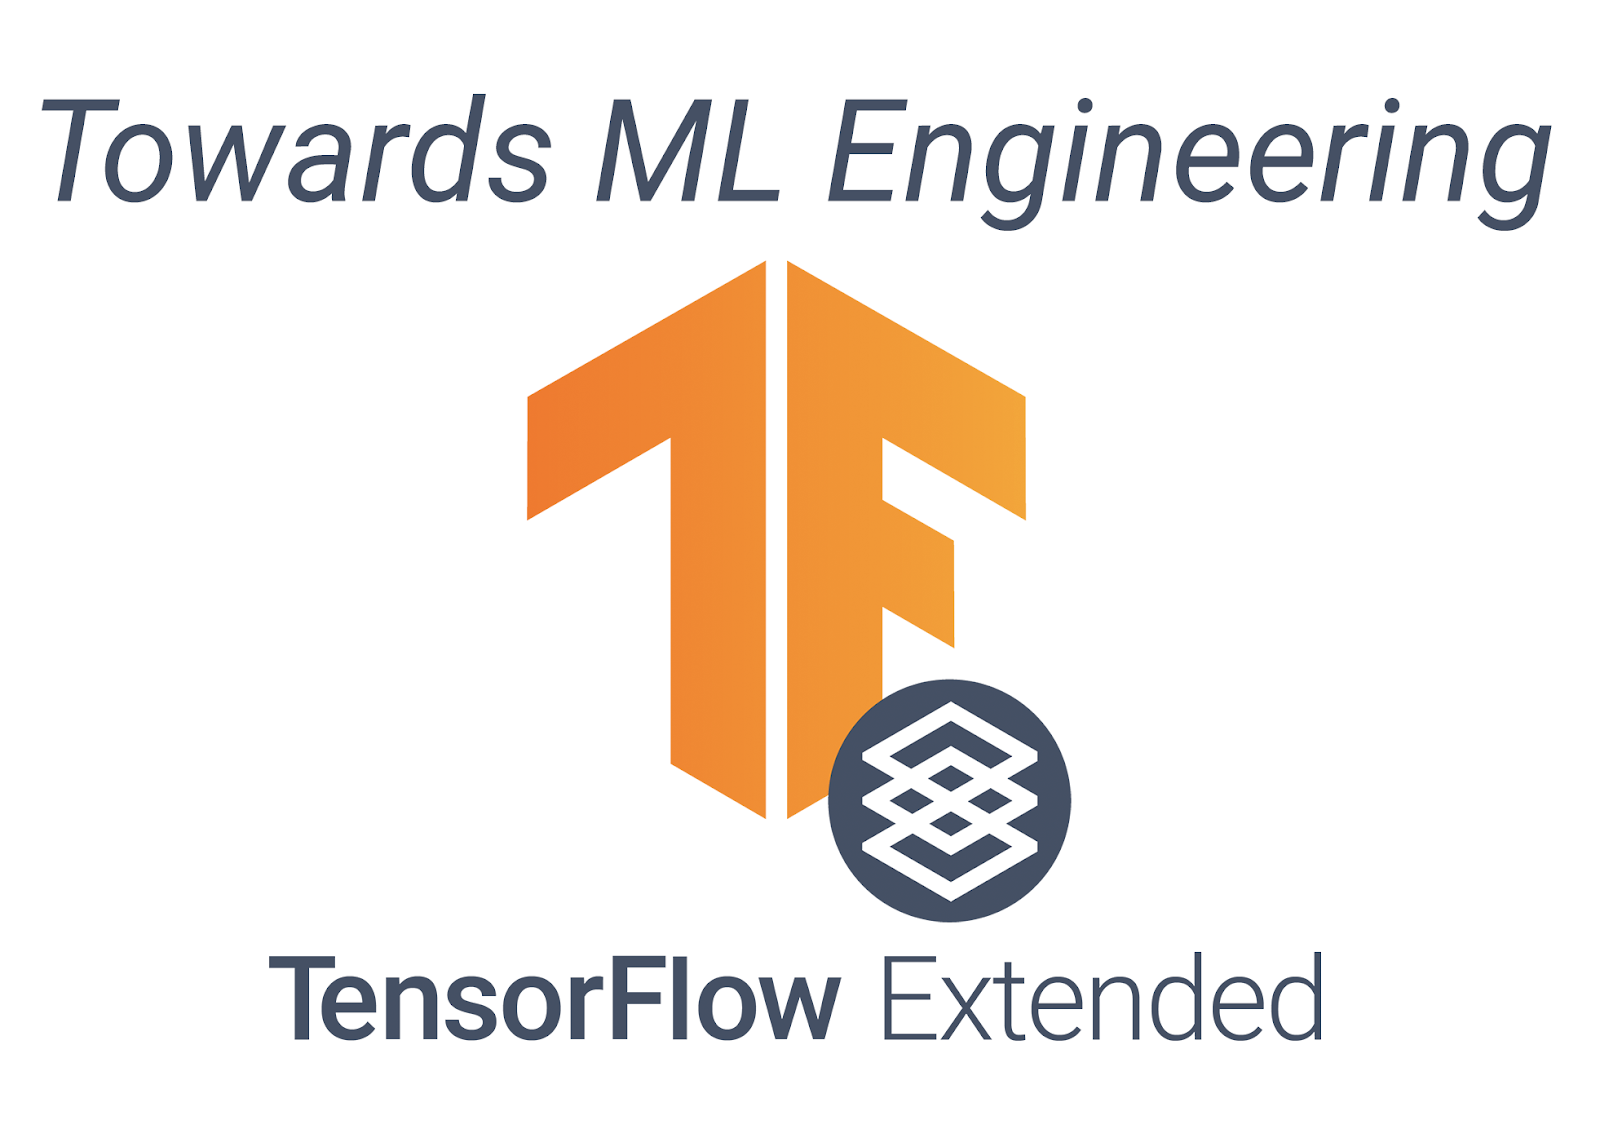 Towards ML Engineering: A Brief History Of TensorFlow Extended (TFX)